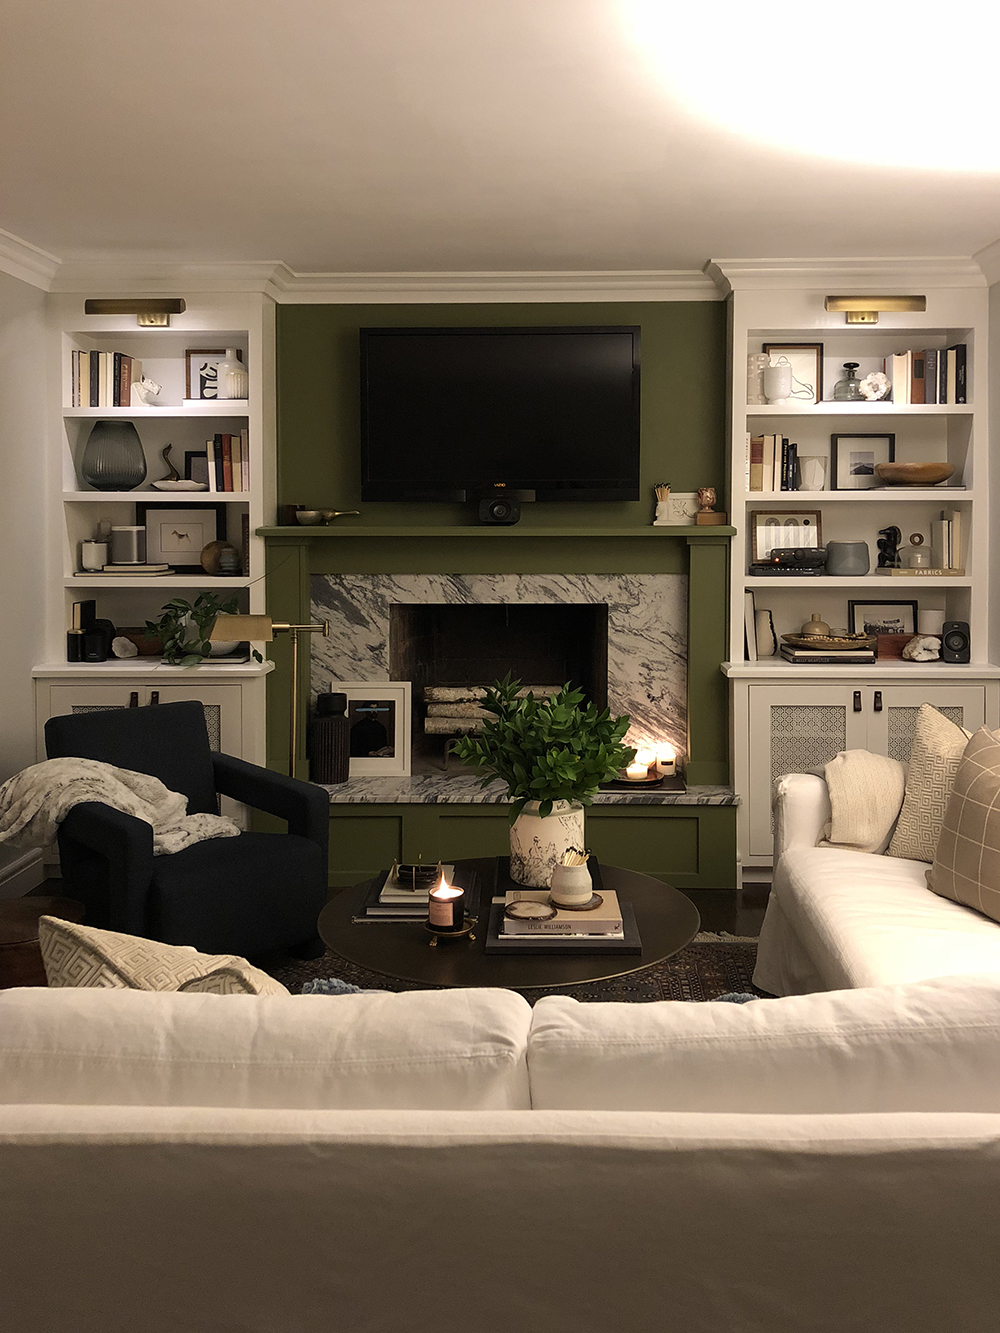 After Dark Home Tour - roomfortuesday.com